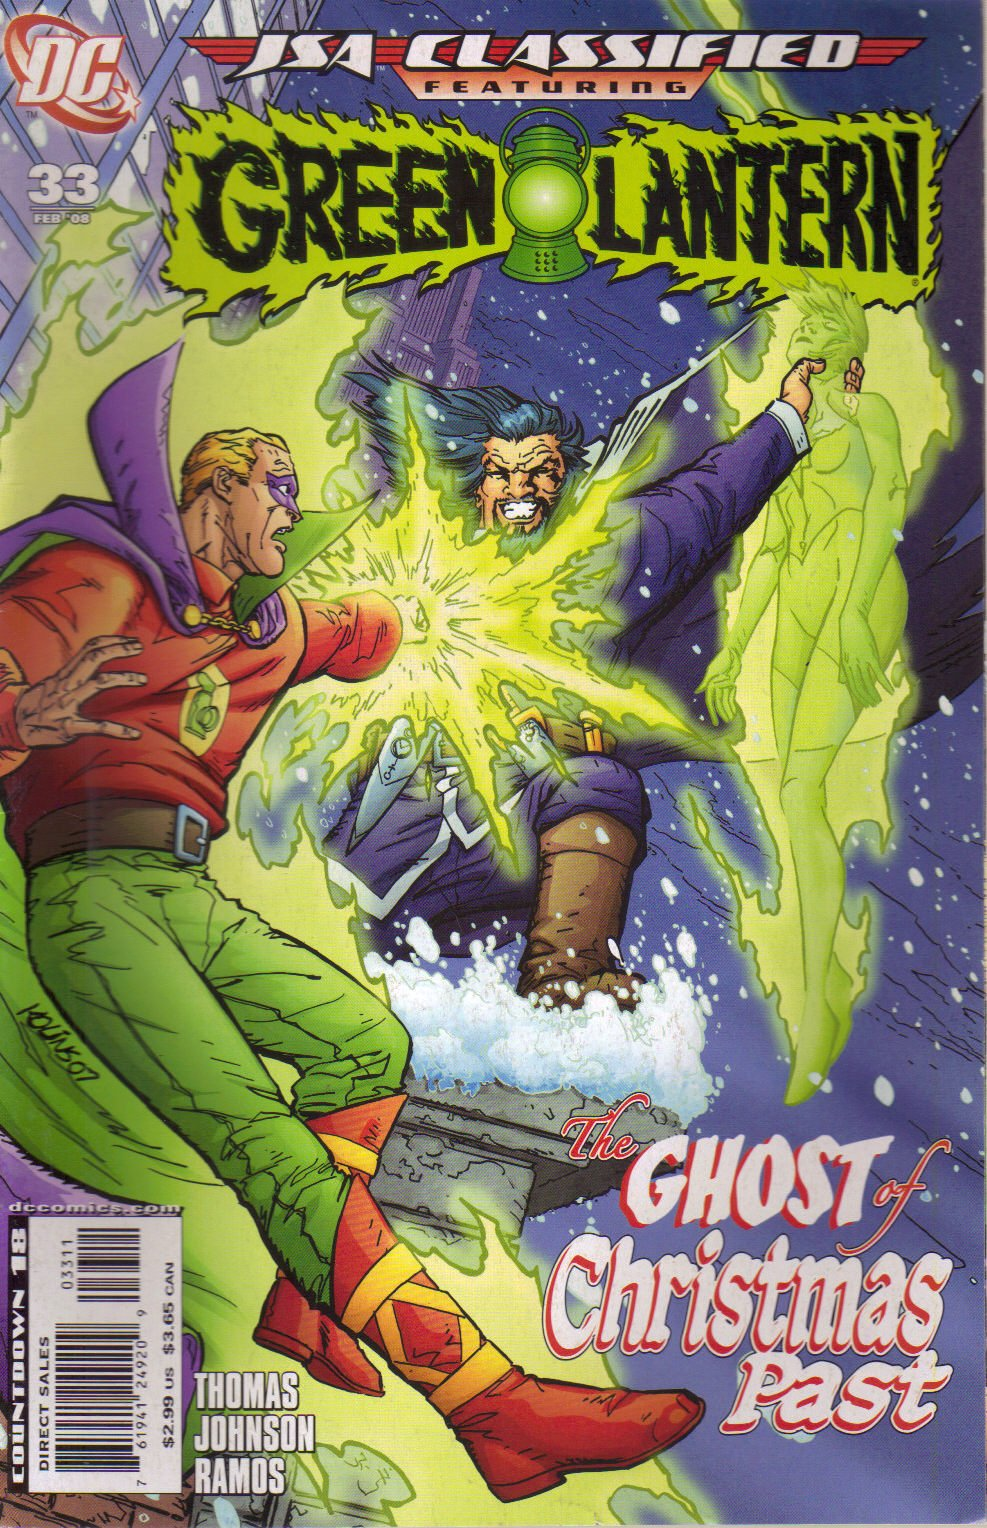 JSA Classified #33 Featuring Green Lantern (the gosts of christms past) PDF ePub ebook